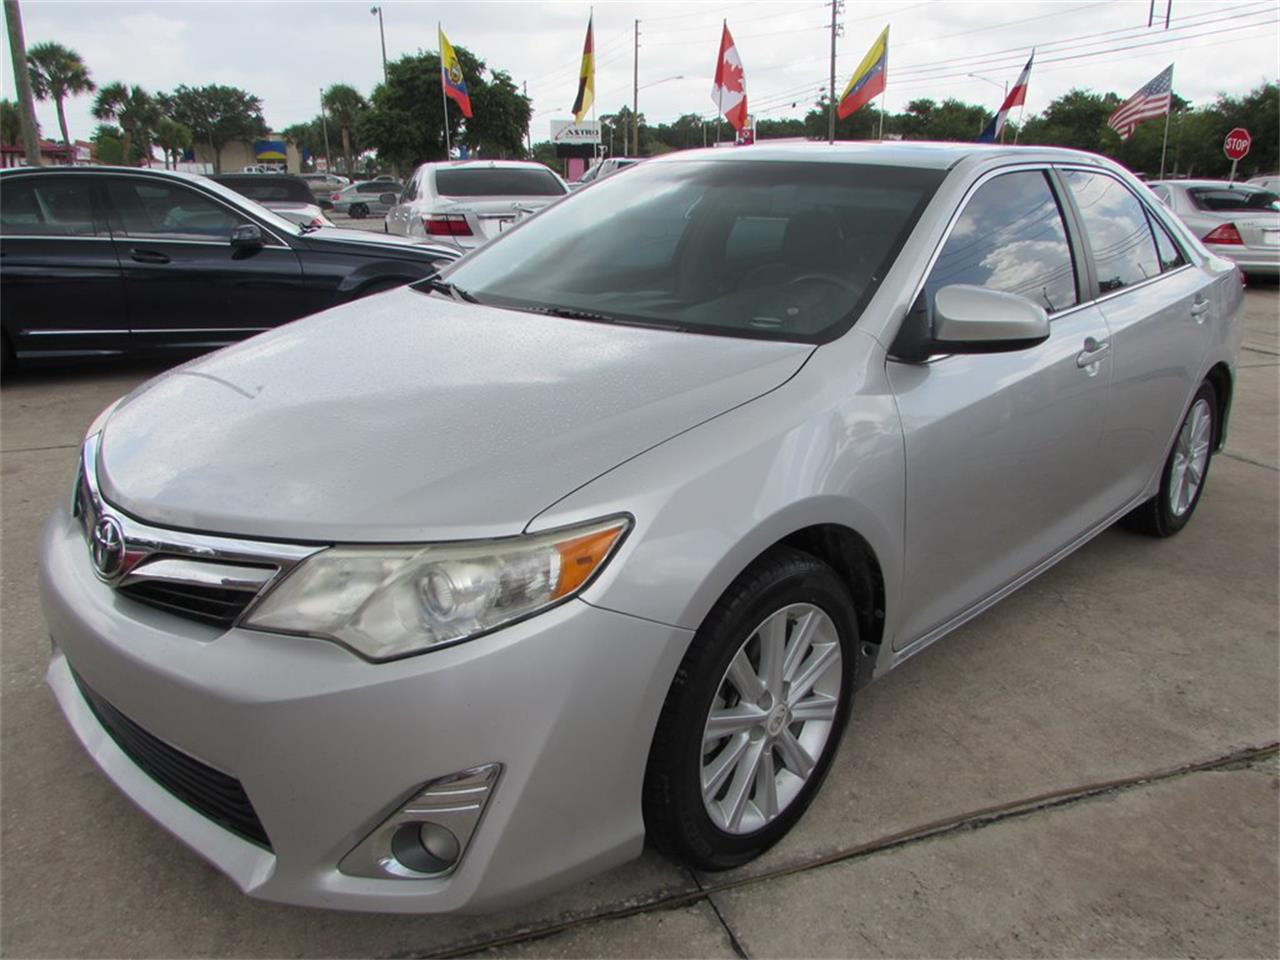 Large Picture of 2012 Camry located in Orlando Florida - $9,500.00 - QBF0